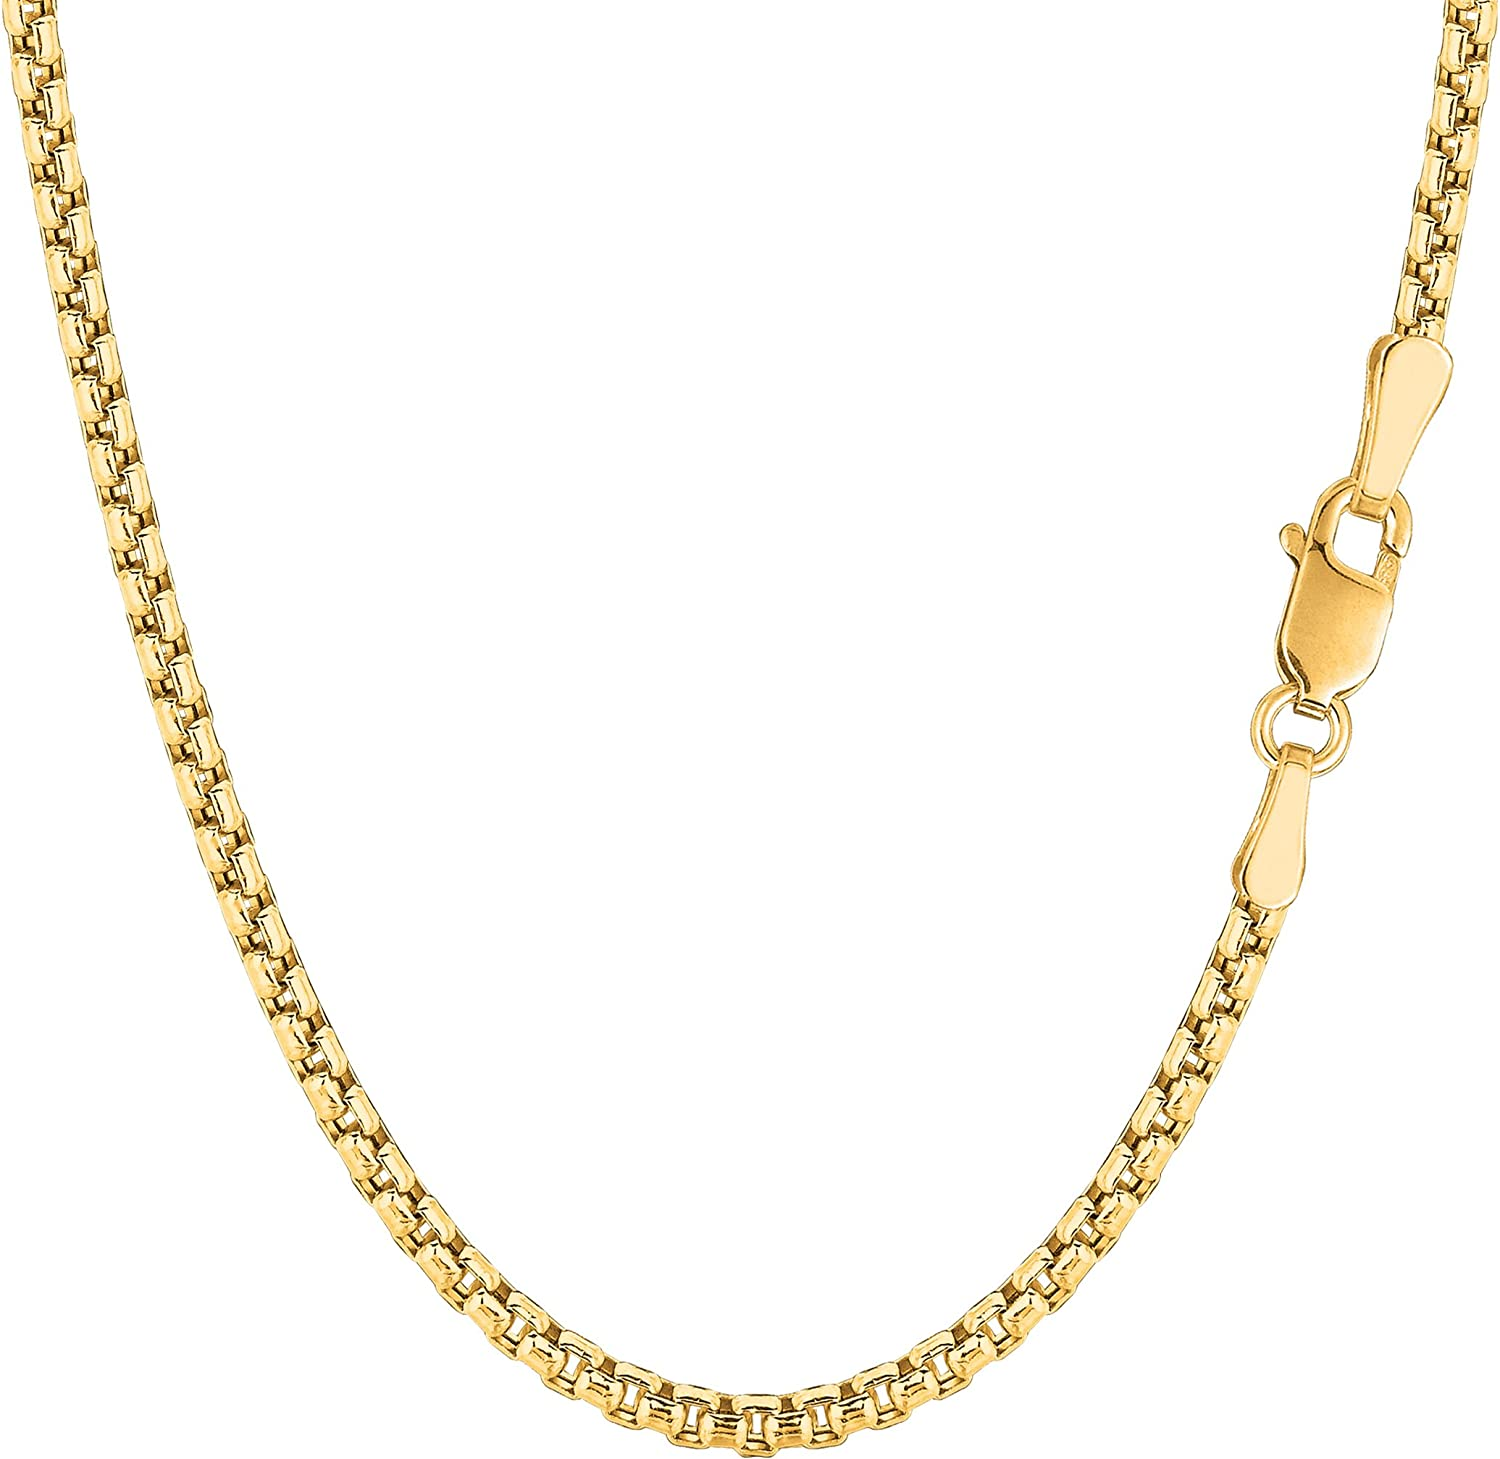 3.4mm Sale 14k YellowWhite Gold Round Box Link Necklace Pendant Chain 1.7mm 2.4mm